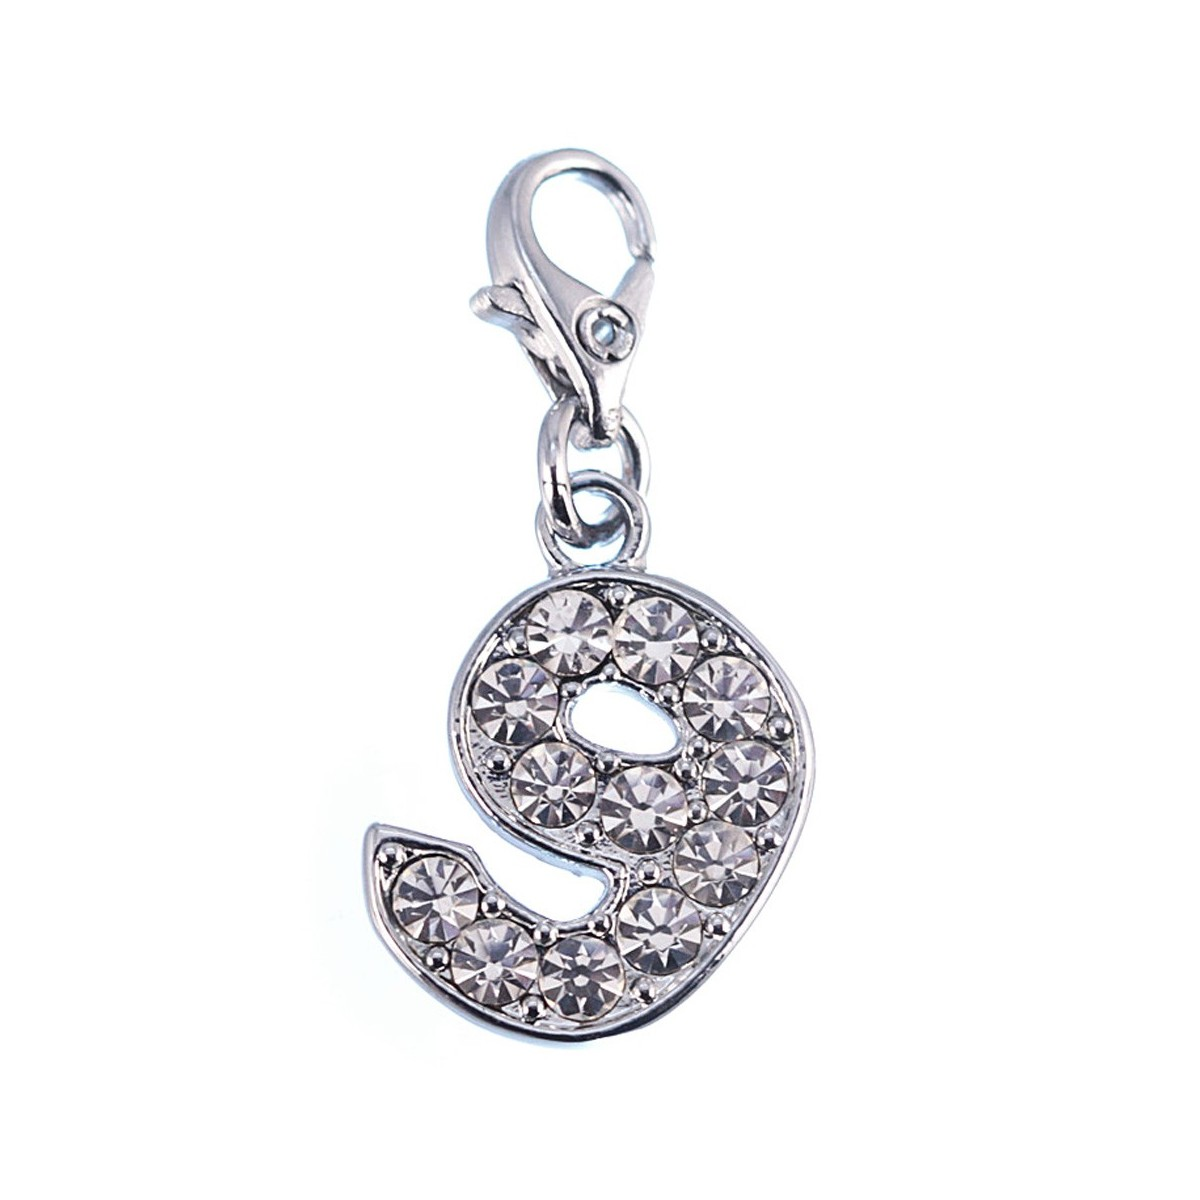 Charm Chiffre 9 So Charm made with Crystal from Swarovski